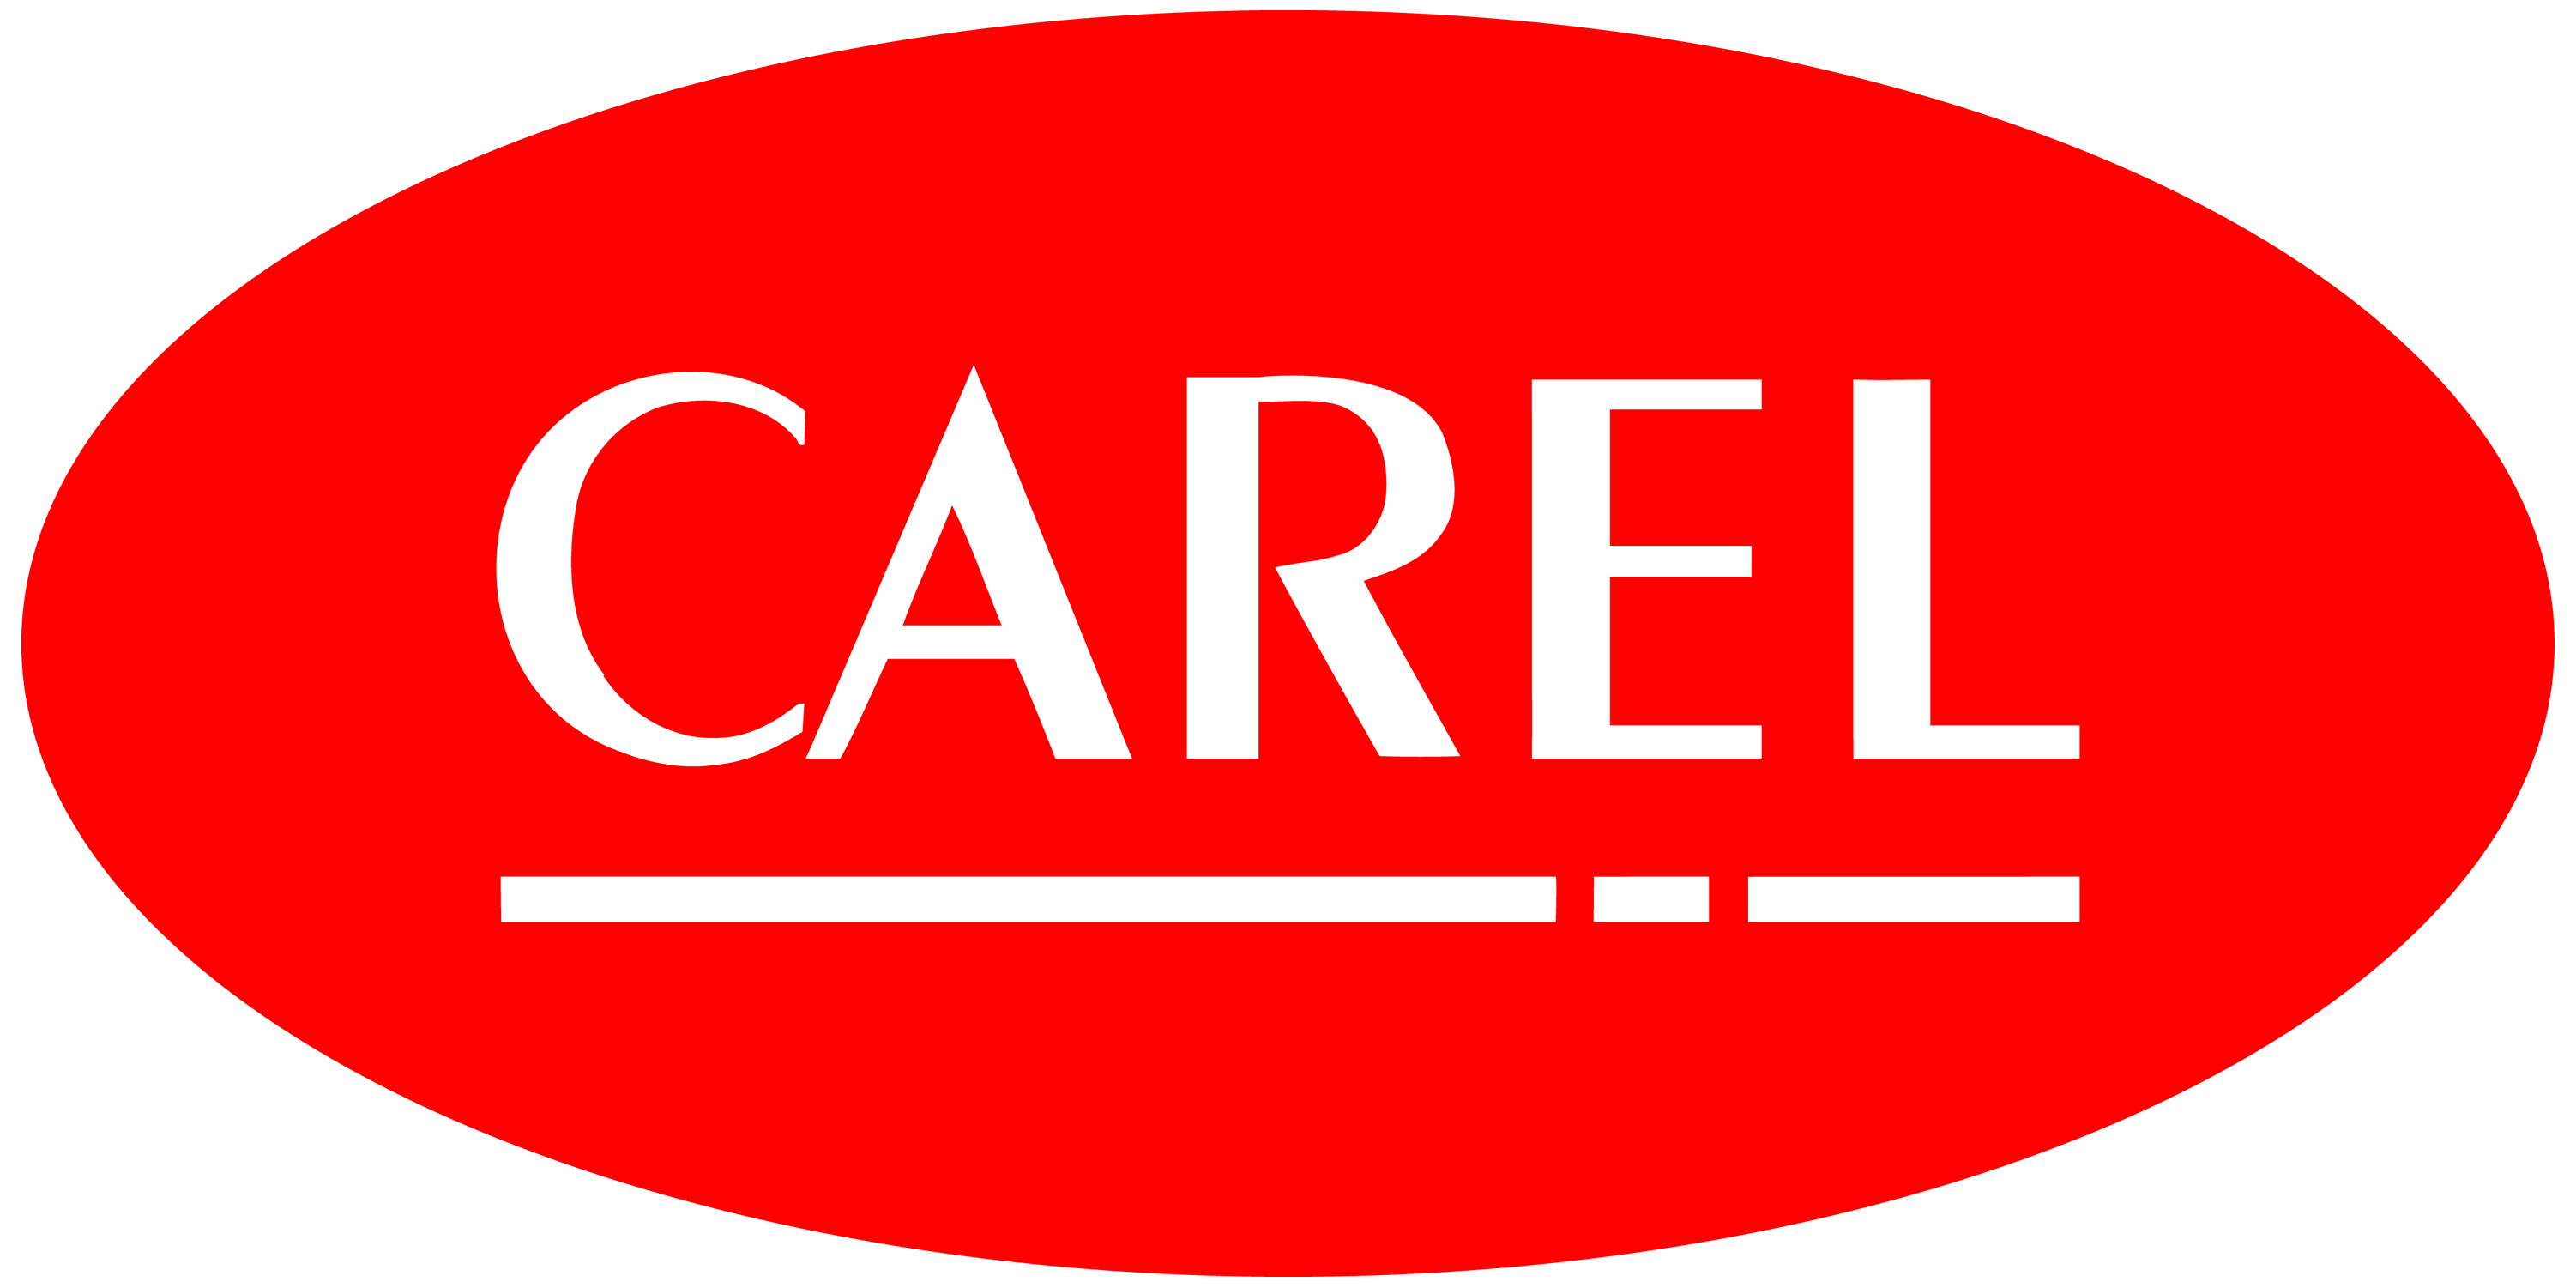 CAREL - Distributors United States of America